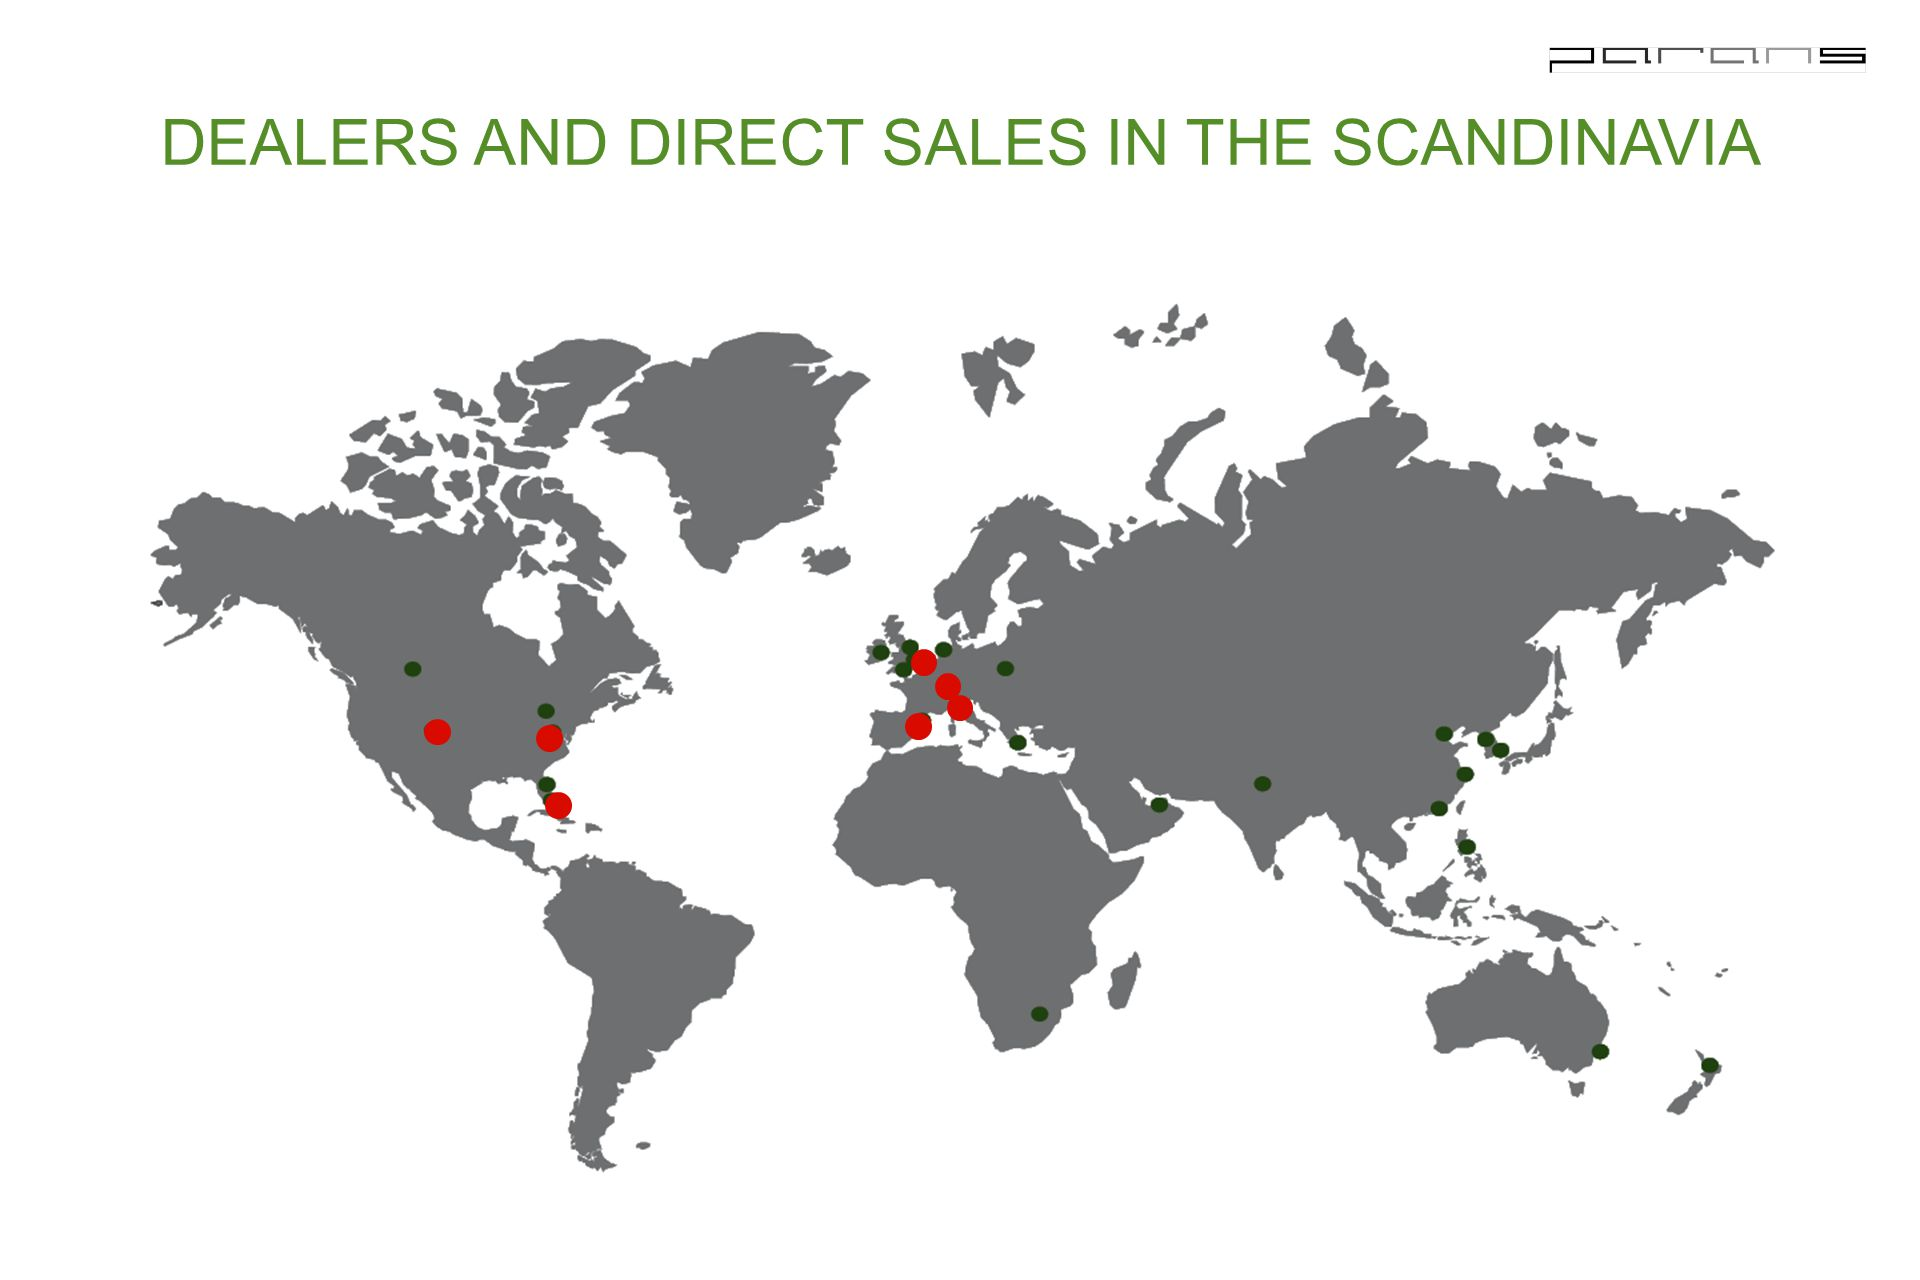 DEALERS AND DIRECT SALES IN THE SCANDINAVIA